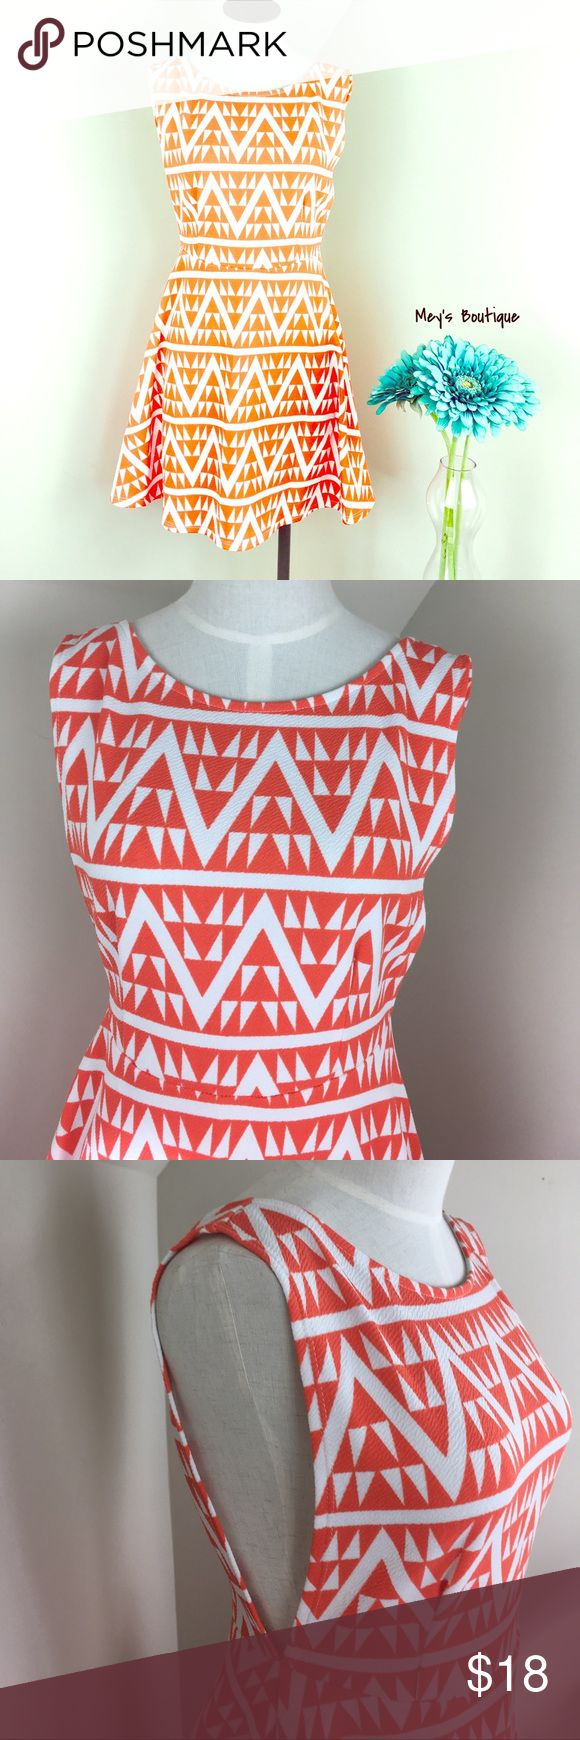 ⭐️En Creme Gorgeous Orange Chevron Dress⭐️ ⭐️En Creme Gorgeous Orange Chevron Dress⭐️ Size Medium. Excellent Condition! This dress is so gorgeous. It contains an open back and pairs perfectly with a cardigan and boots. Next day shipping. All sales are final. Nordstrom Dresses Mini